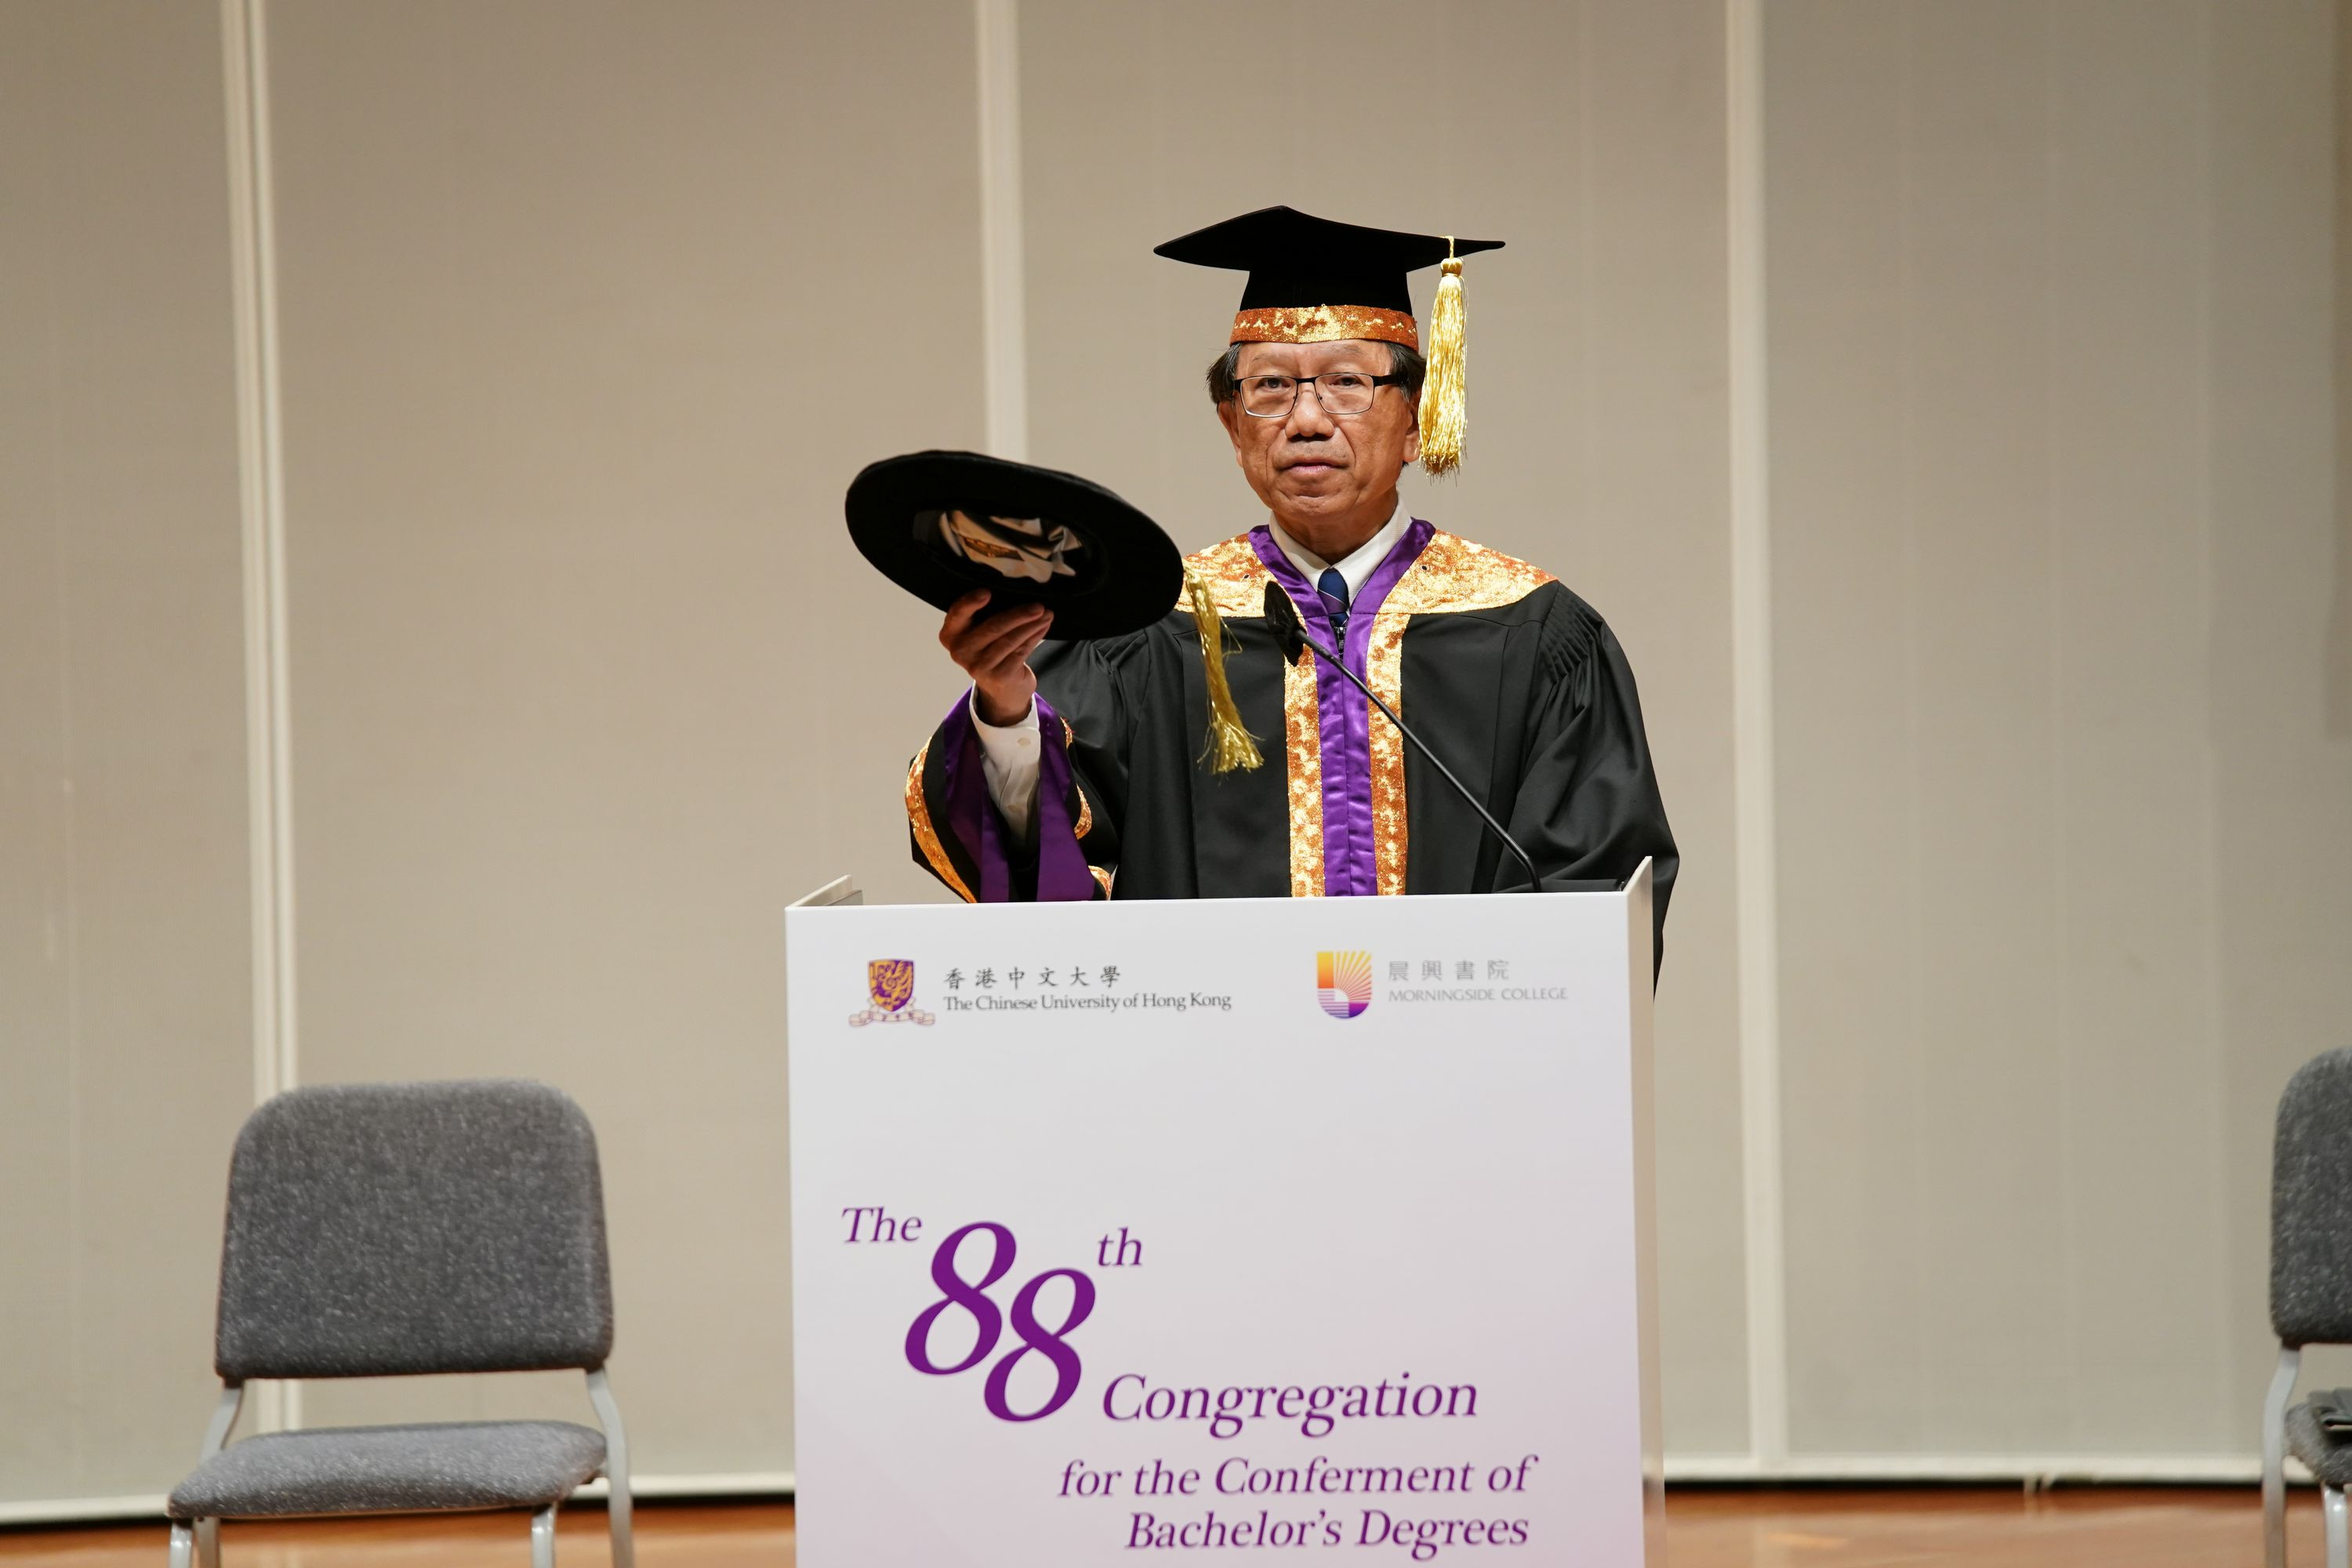 CUHK 88th Congregation for the Conferment of Bachelor's and Master's Degrees